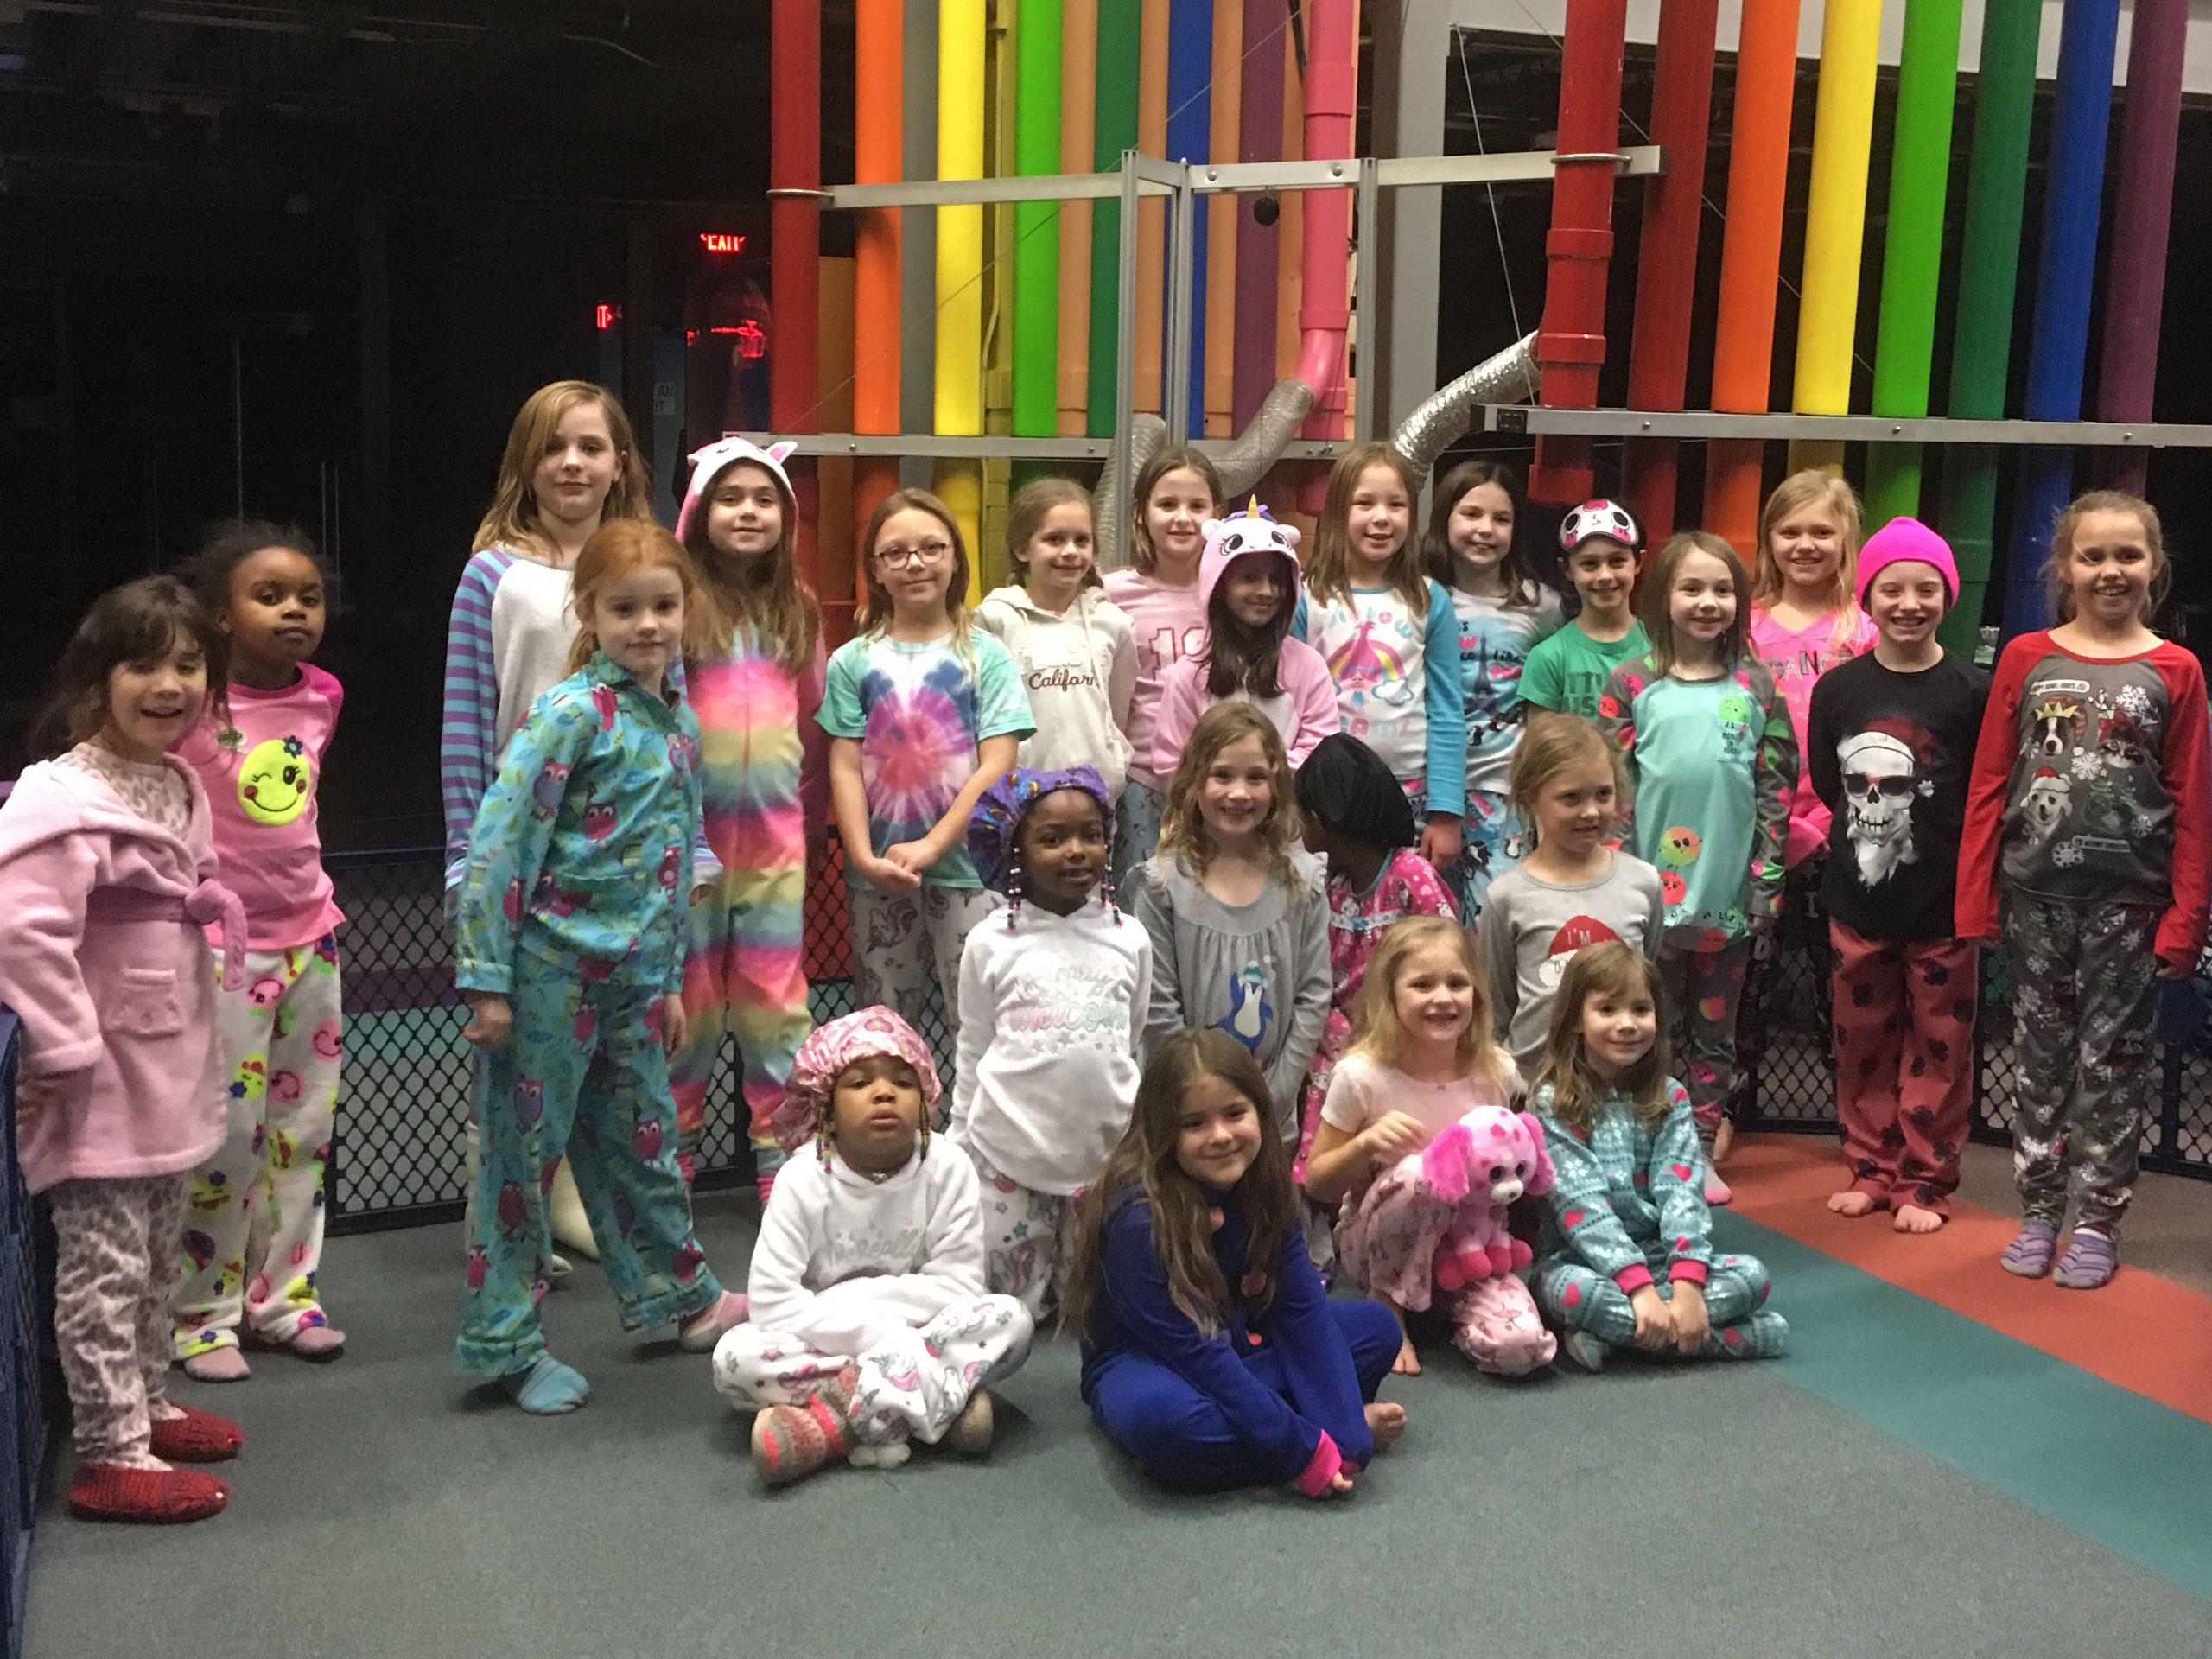 A group of children participates in a themed overnight party prepares for learning activities. Photo: SciTech Museum